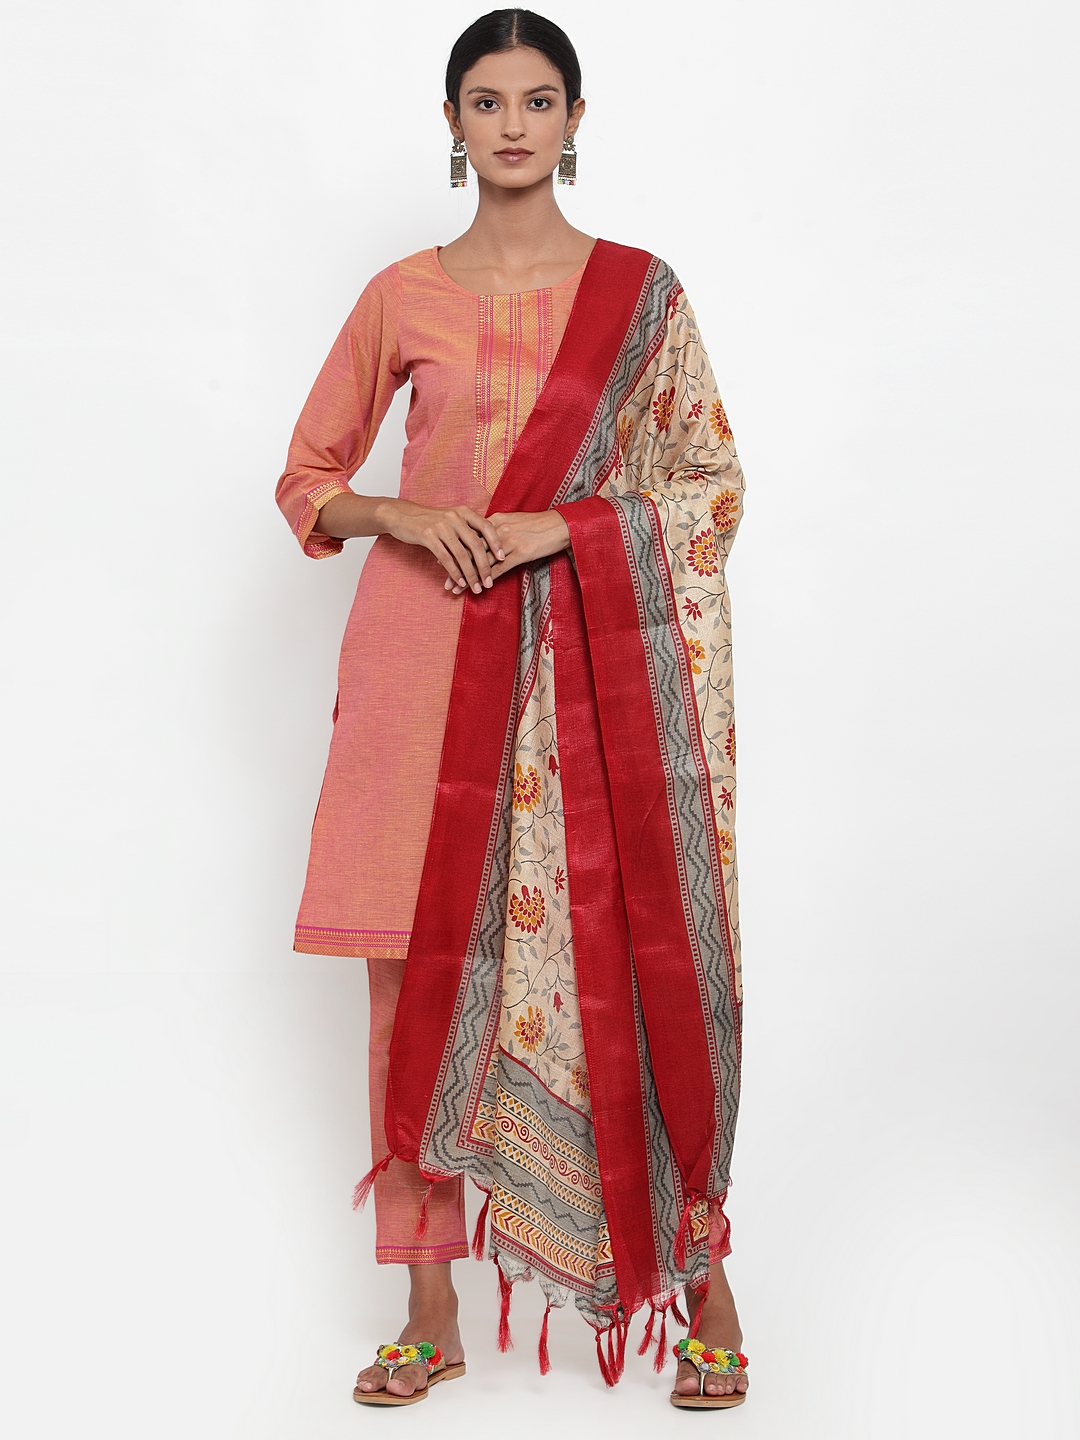 Jompers | Jompers® Women Pink Pure Cotton Kurta with pants and printed dupatta set